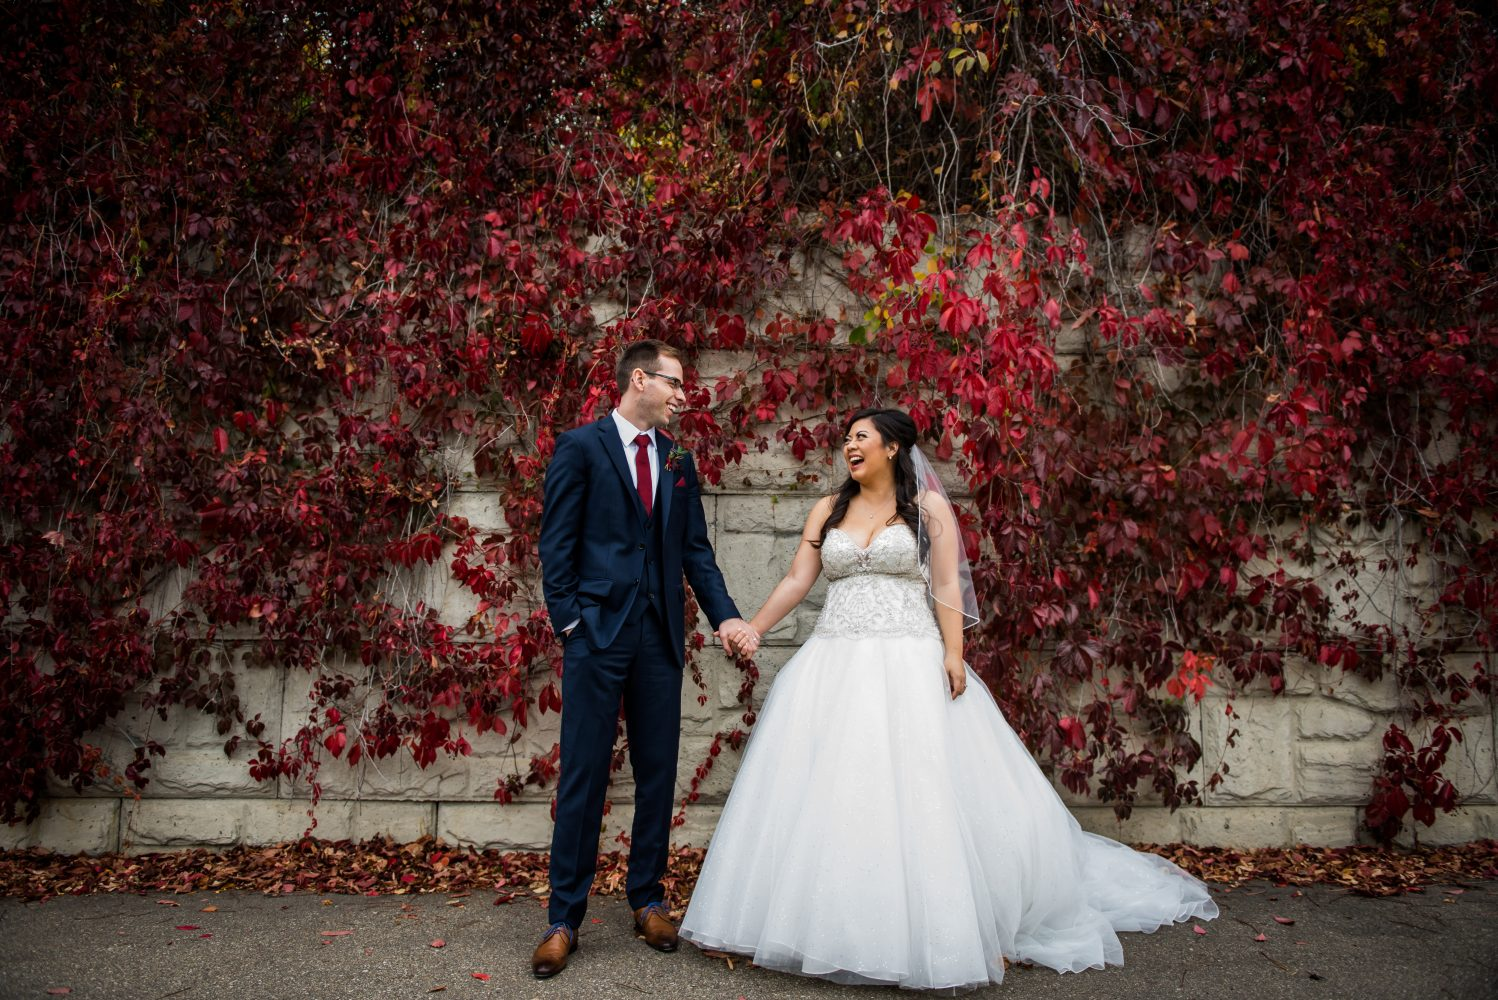 A vibrant fall wedding at the Old Timers Cabin with a beautiful vine wall at Louis Mckinney Park | 3Haus Photographics